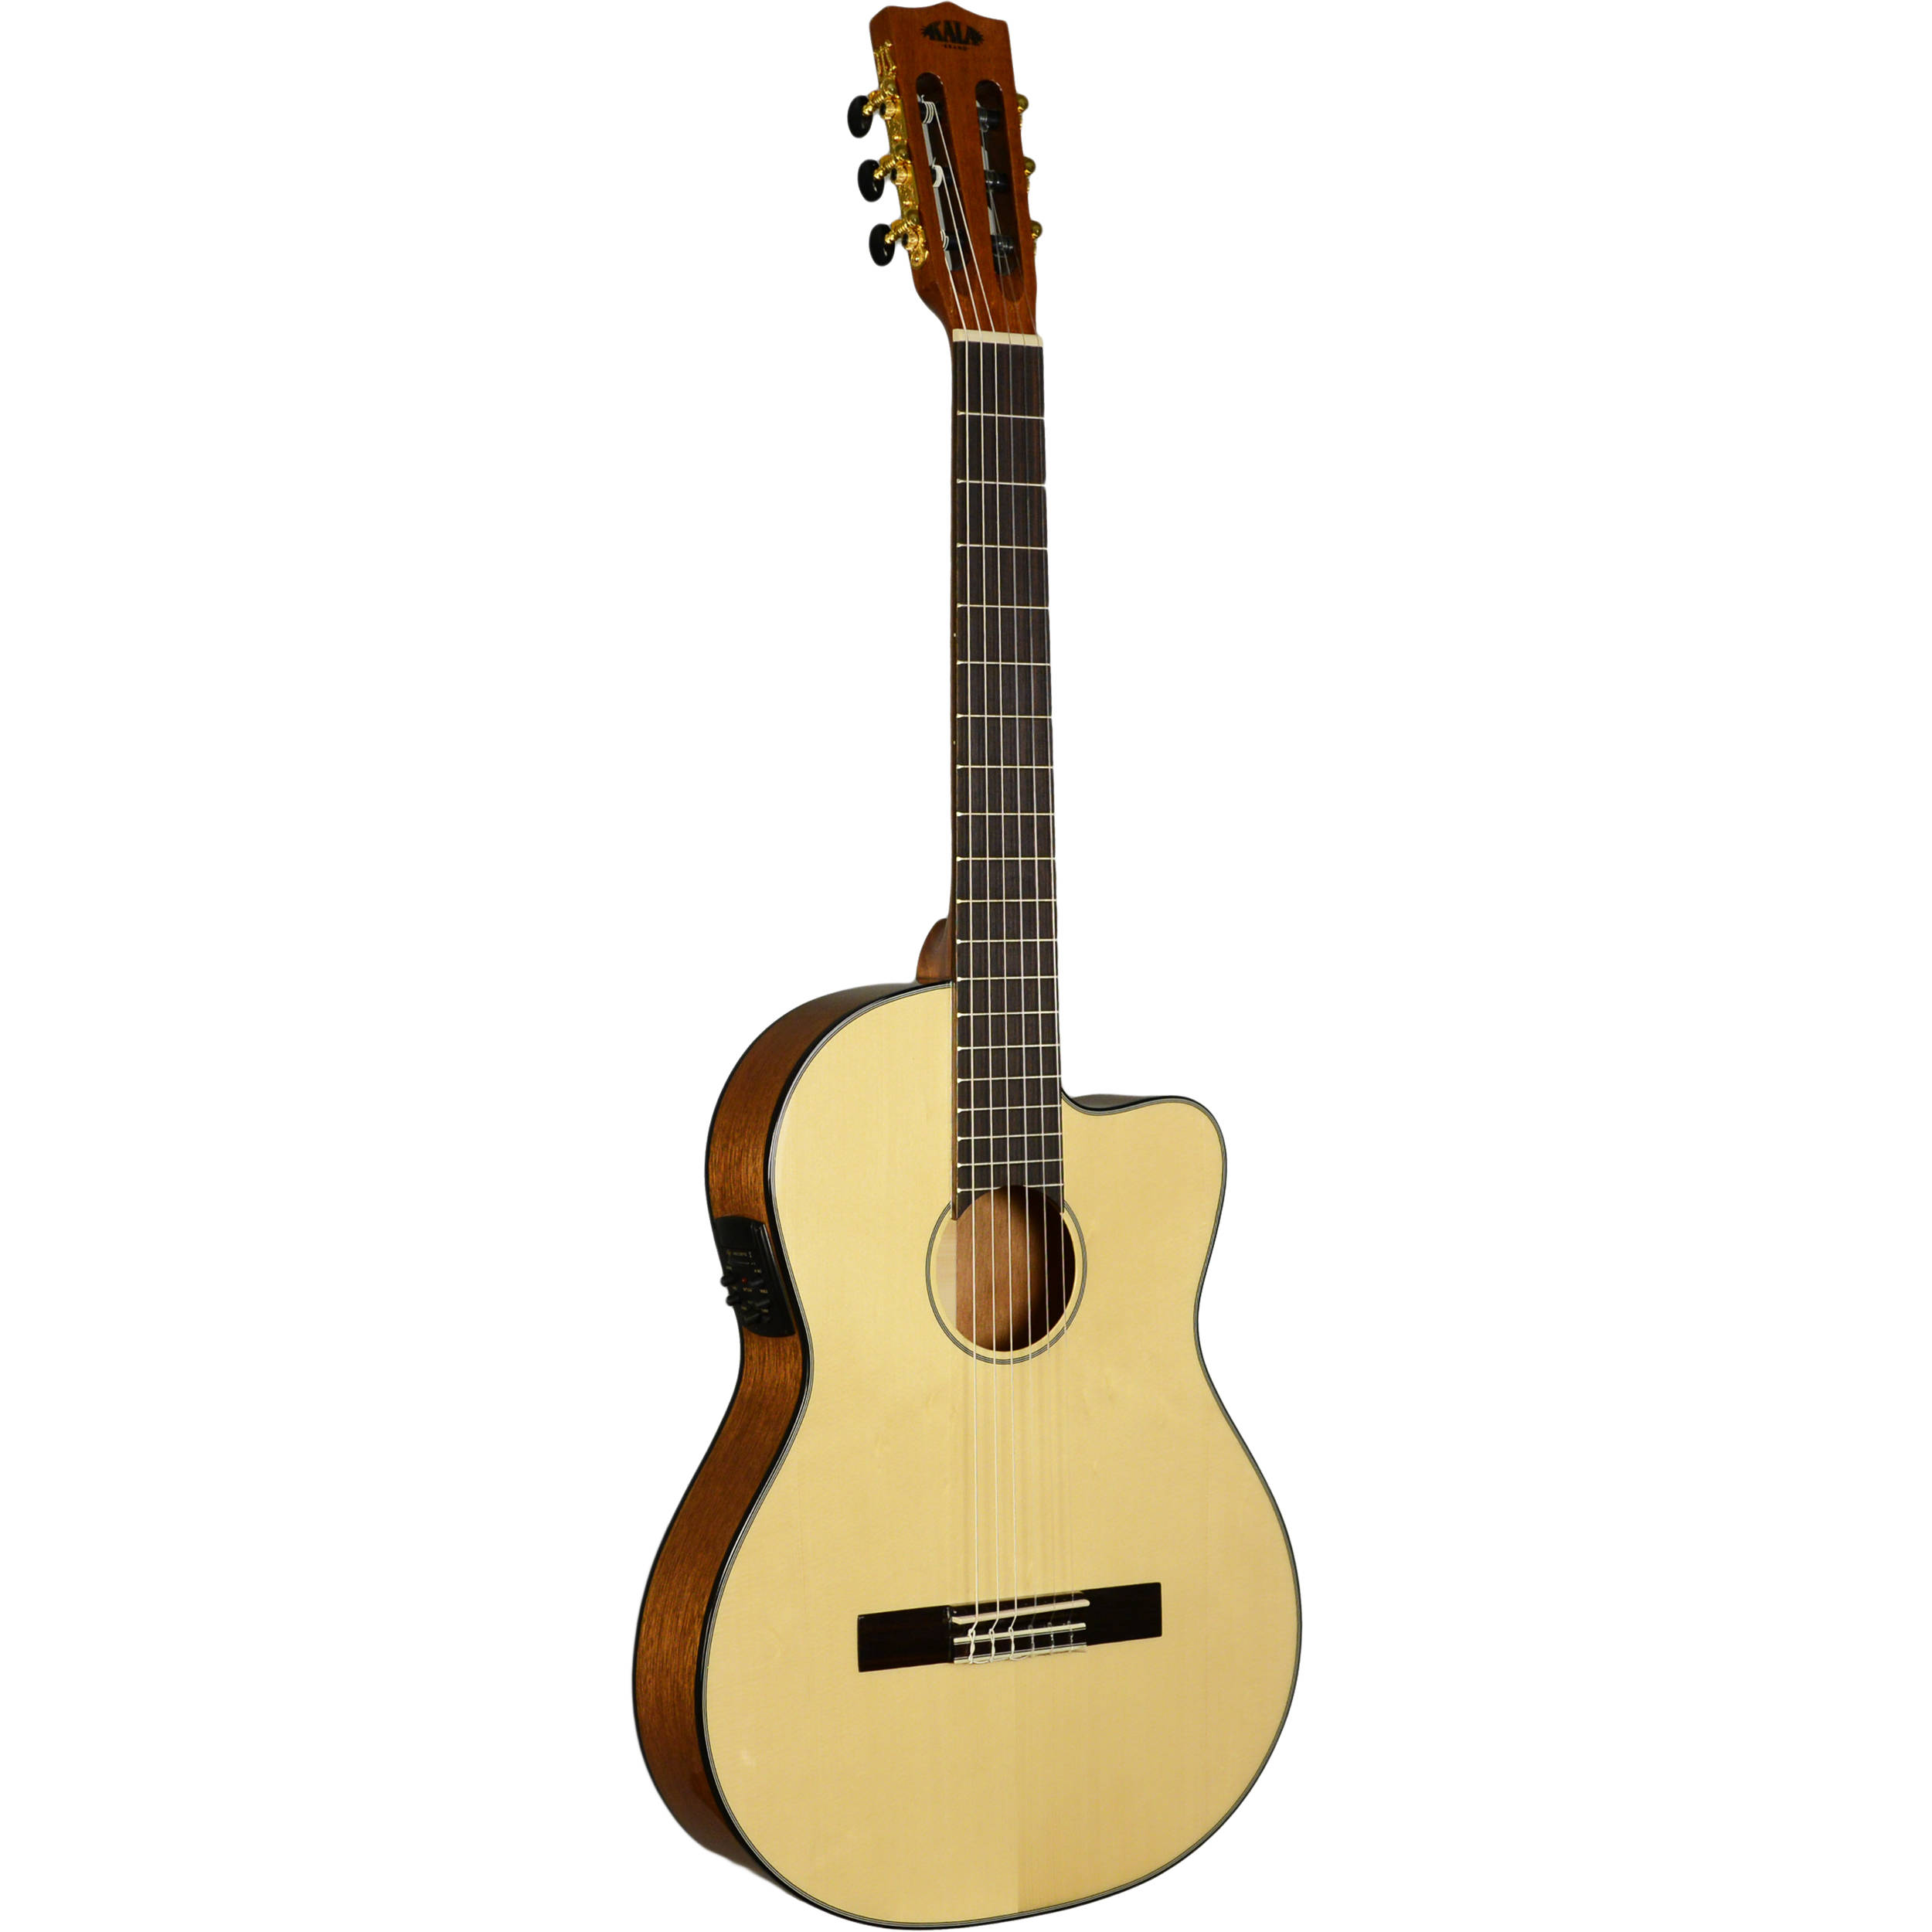 kala thinline nylon string acoustic electric guitar. Black Bedroom Furniture Sets. Home Design Ideas